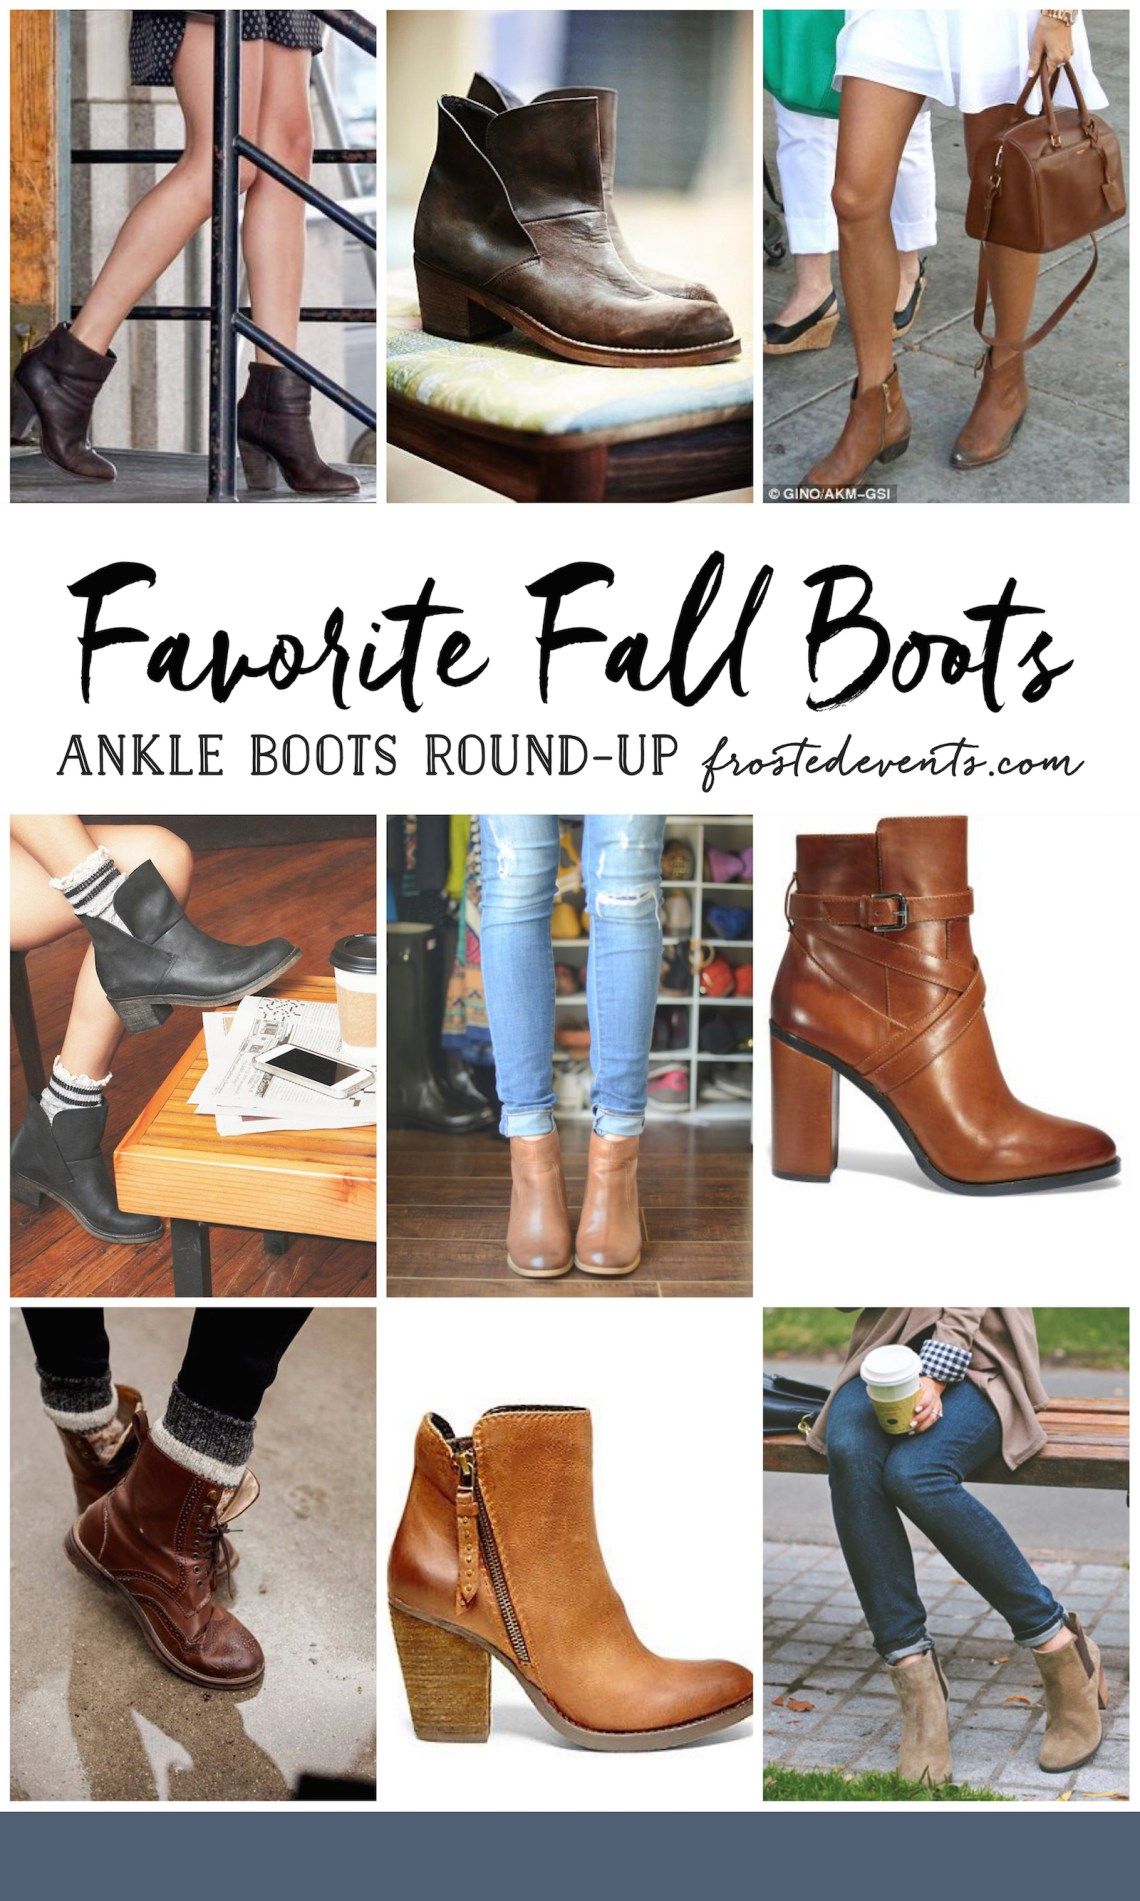 Outfits with Boots- Ankle Boots Outfit Ideas Favorite Fall Boots Round-up Cute Ankle Boots Fall Style frostedevents.com